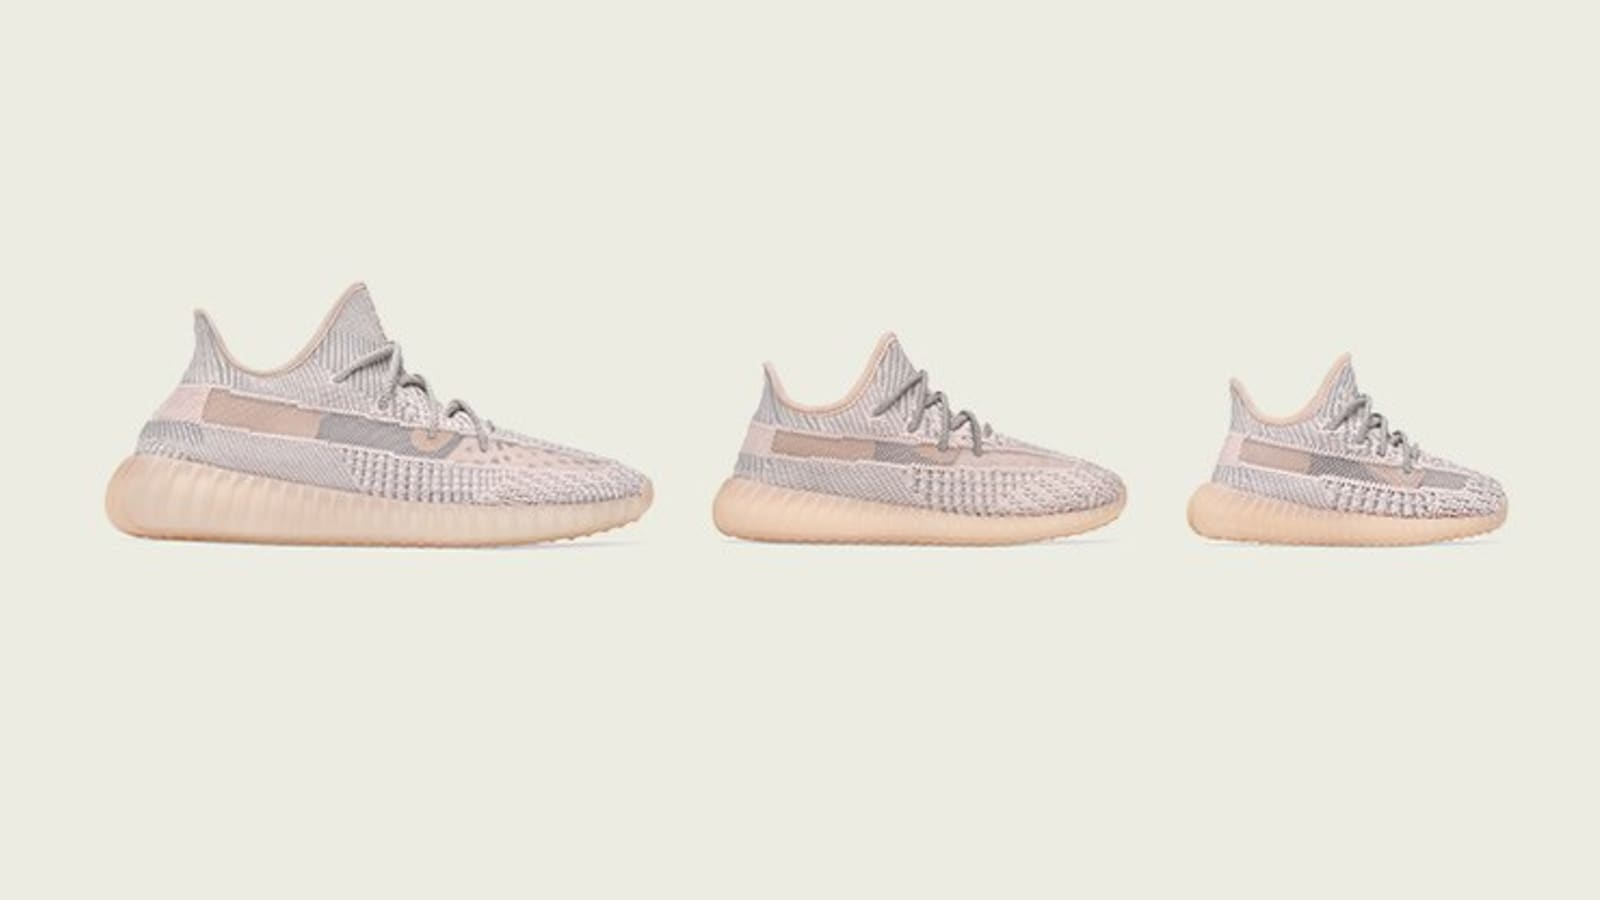 """Adidas Yeezy Boost 350 V2 """"Synth"""" Release Date Confirmed, Photos"""